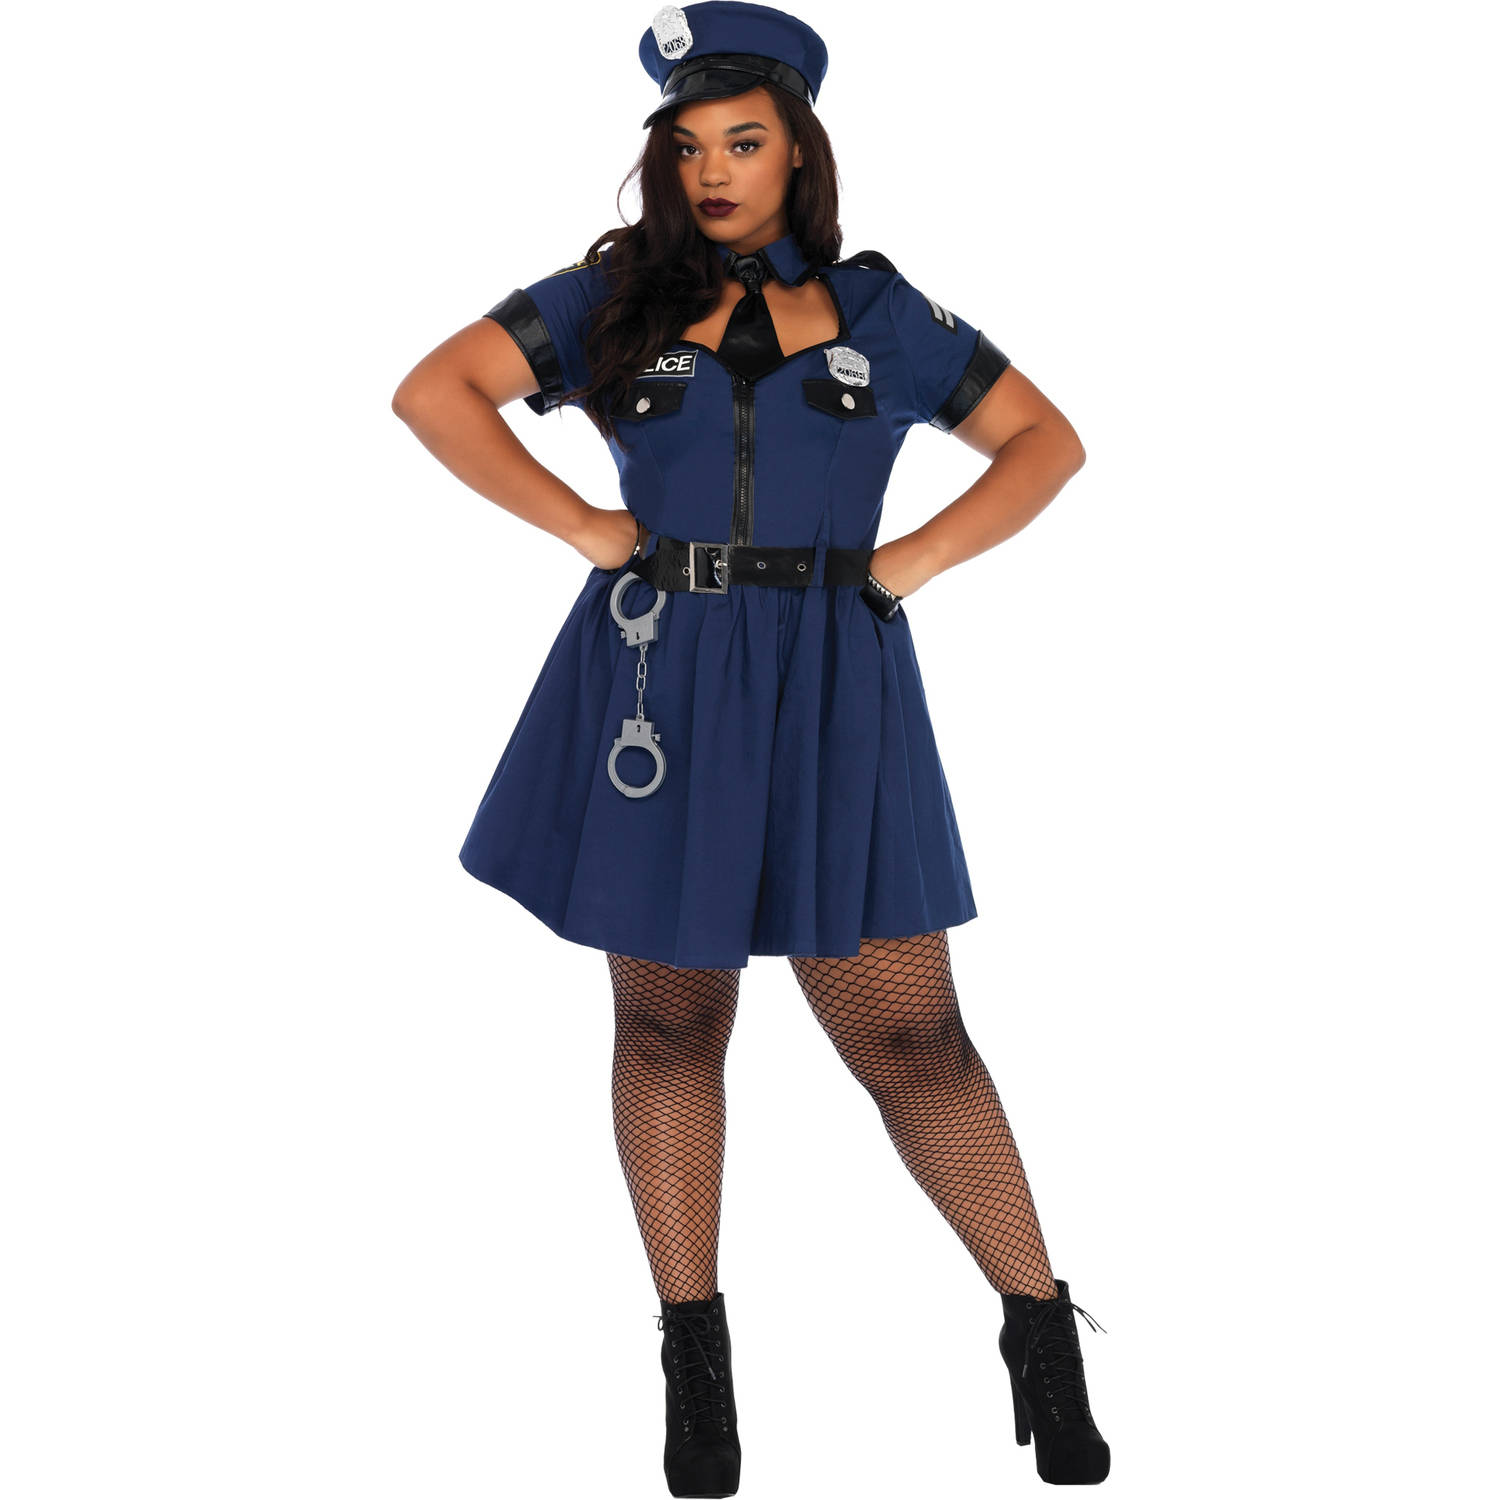 Leg Avenue Womens 5 PC Plus Size Flirty Cop Costume